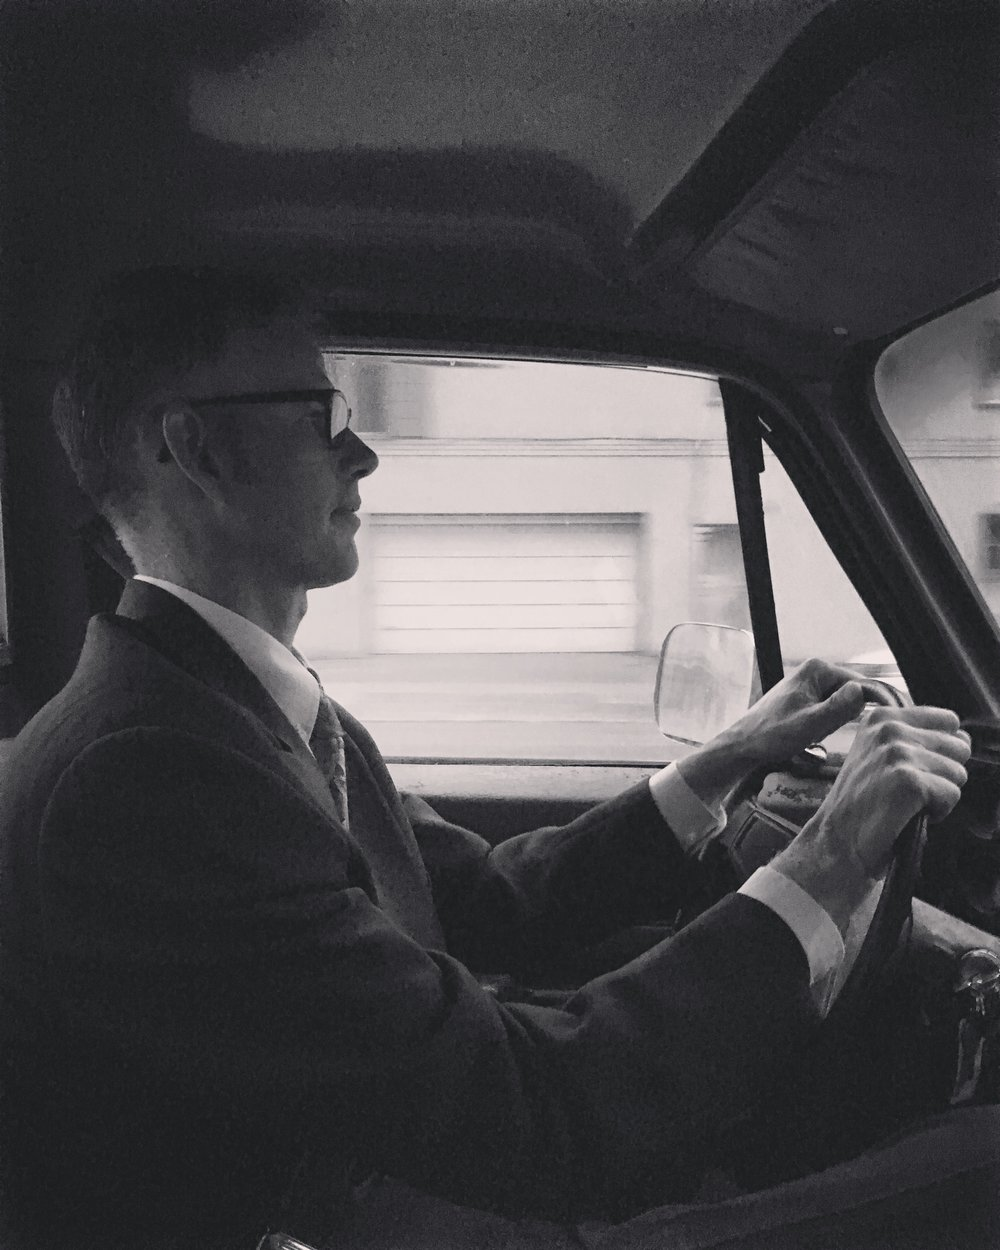 It's time we took the wheel. Let's take it back. Vote Mike Murphy for SF Board of Supervisors, District 4   paid for by Mike Murphy for District 4 Supervisor 2018. Financial disclosures available at sfethics.org